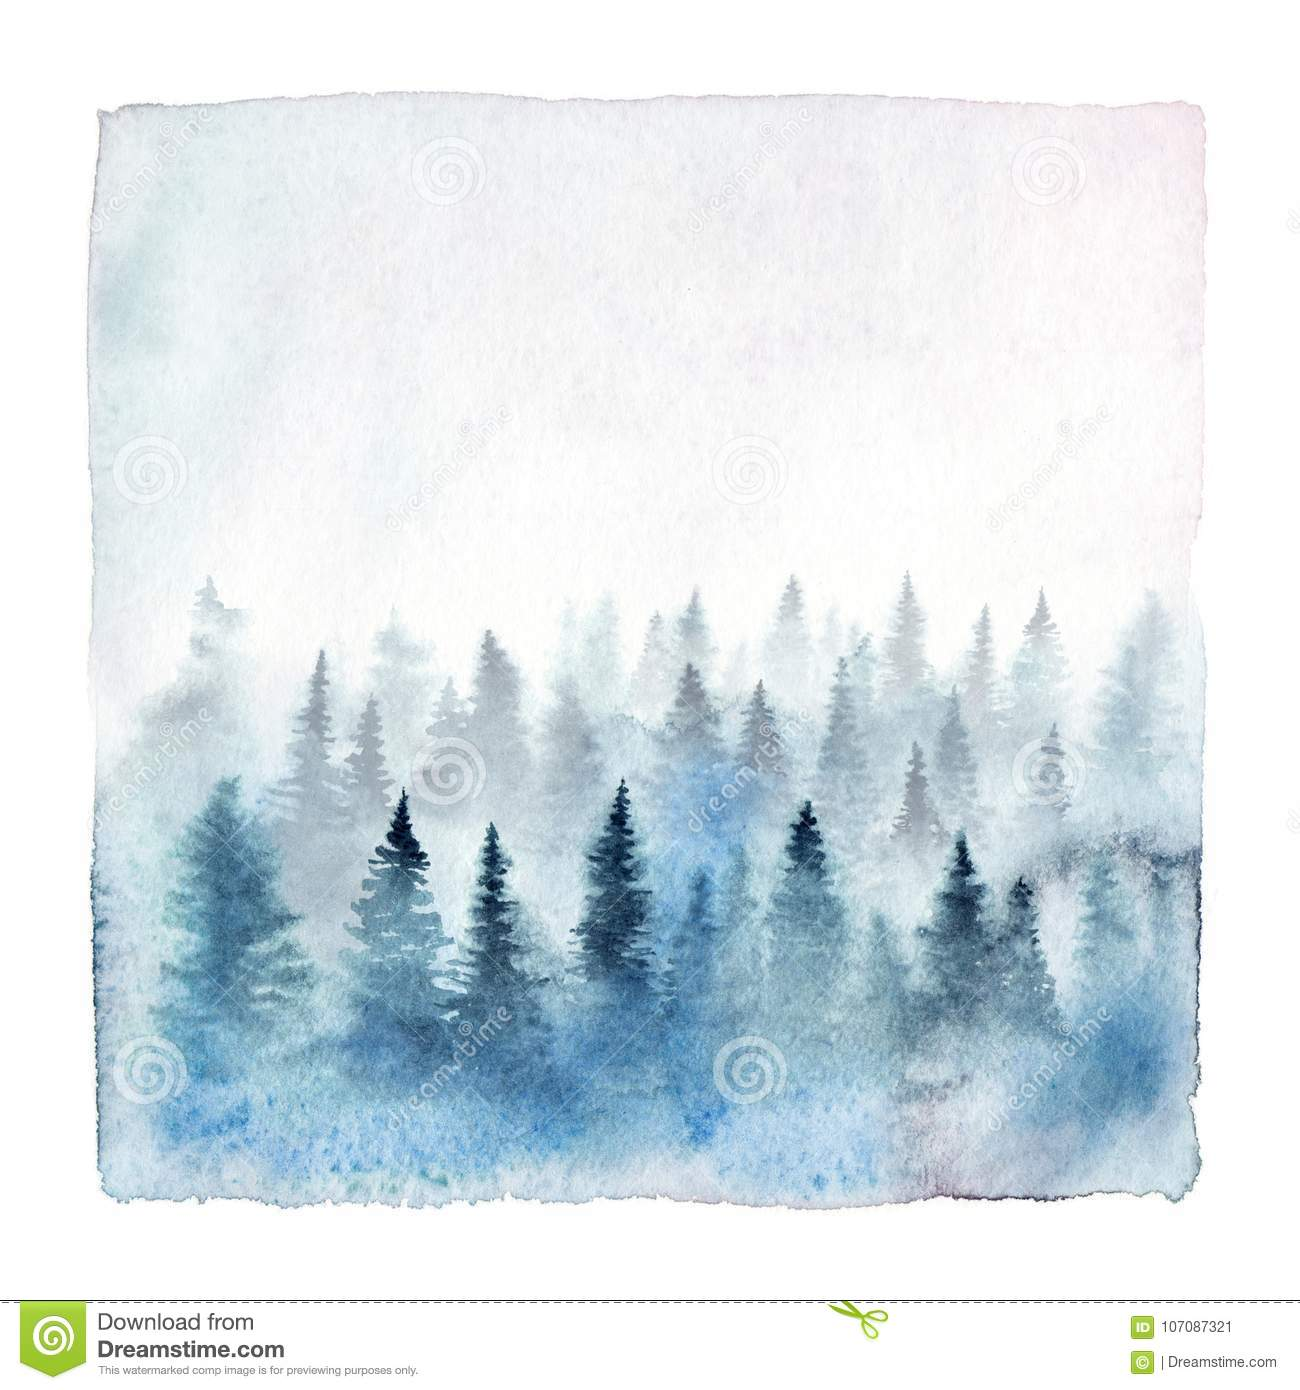 watercolor forest stock illustrations 72 786 watercolor forest stock illustrations vectors clipart dreamstime https www dreamstime com watercolor foggy forest painting spruce trees hand painted winter landscape isolated white background image107087321